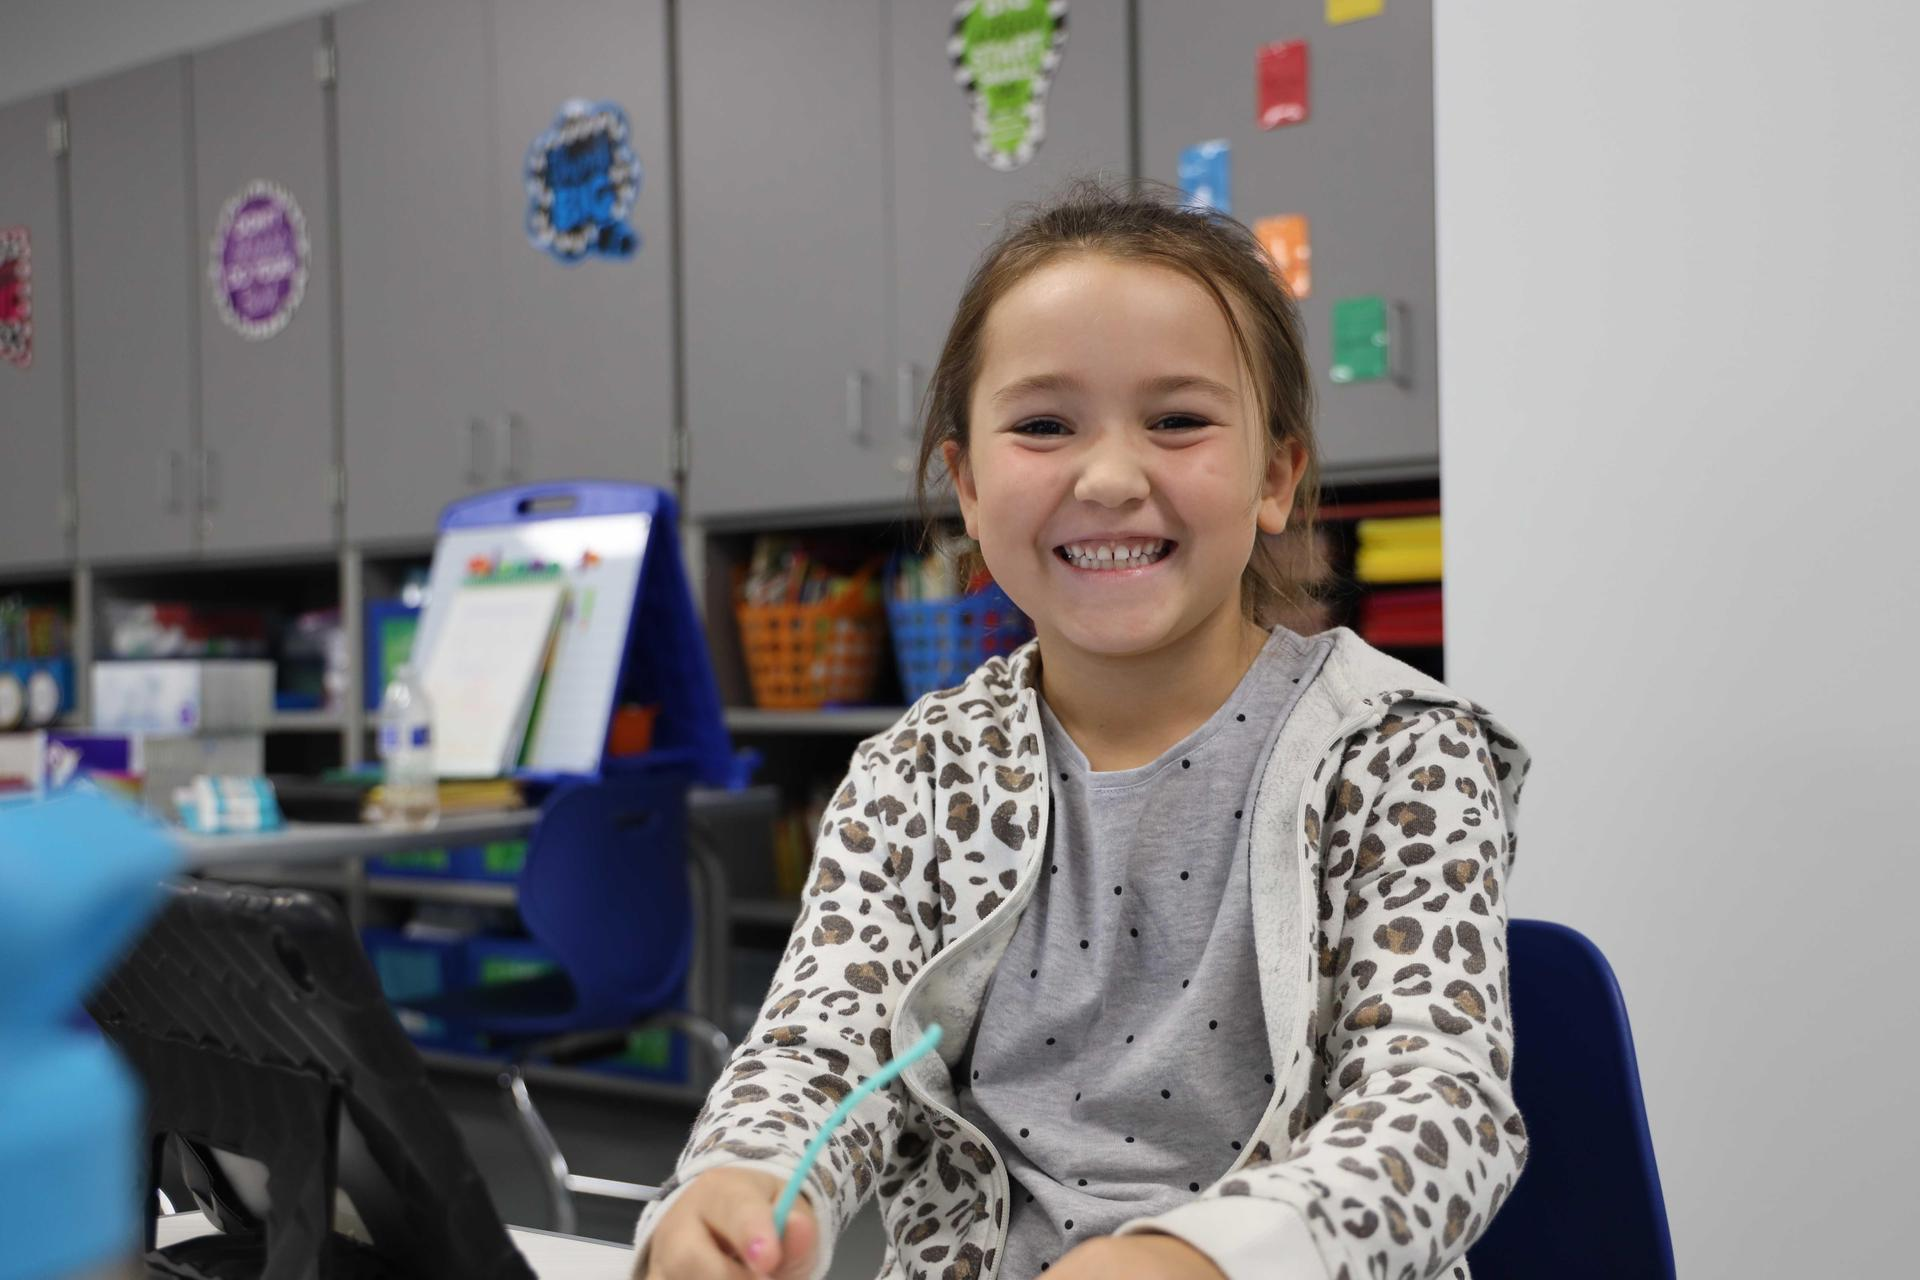 Carpenter Elementary students on the first day of in-person learning